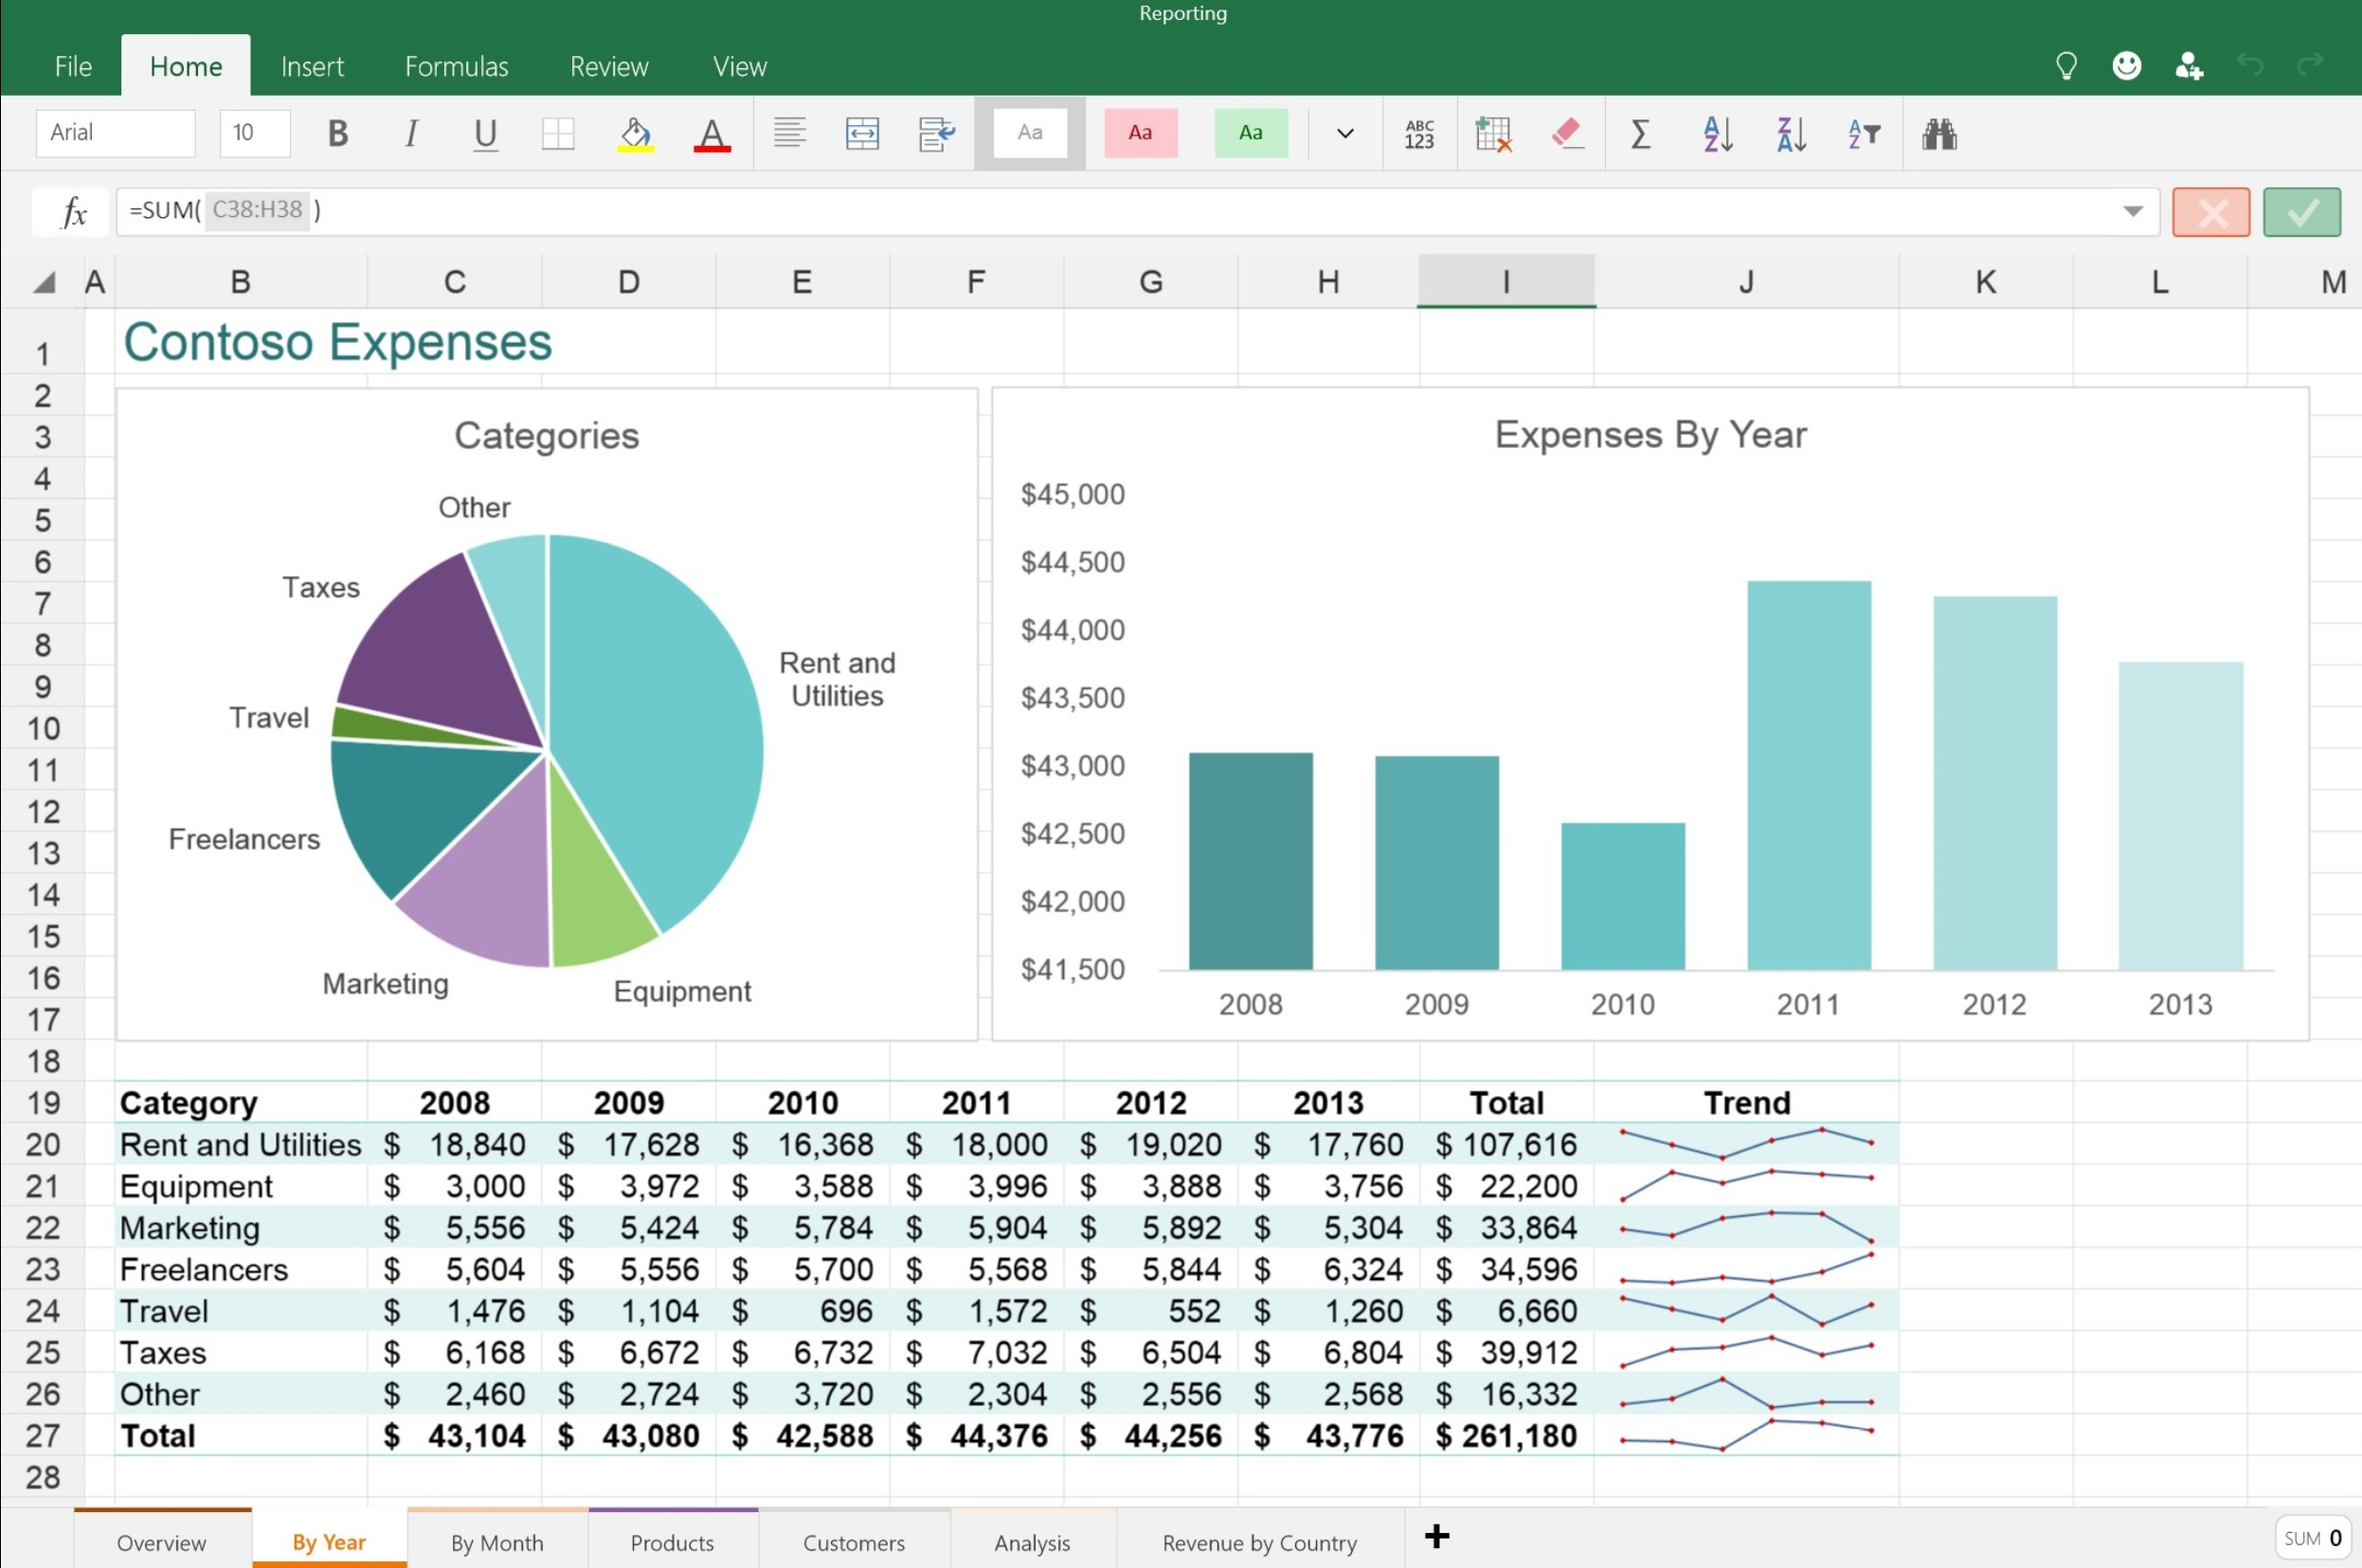 Ediblewildsus  Marvelous Features Available In The New Word Excel And Powerpoint Apps For  With Handsome Excel Touch App  With Cool Household Budget Worksheet Excel Also Excel List Duplicates In Addition Excel Vba Protect And How To Calculate Discount Percentage In Excel As Well As Excel Notes Template Additionally How To Formula Excel From Mspowerusercom With Ediblewildsus  Handsome Features Available In The New Word Excel And Powerpoint Apps For  With Cool Excel Touch App  And Marvelous Household Budget Worksheet Excel Also Excel List Duplicates In Addition Excel Vba Protect From Mspowerusercom